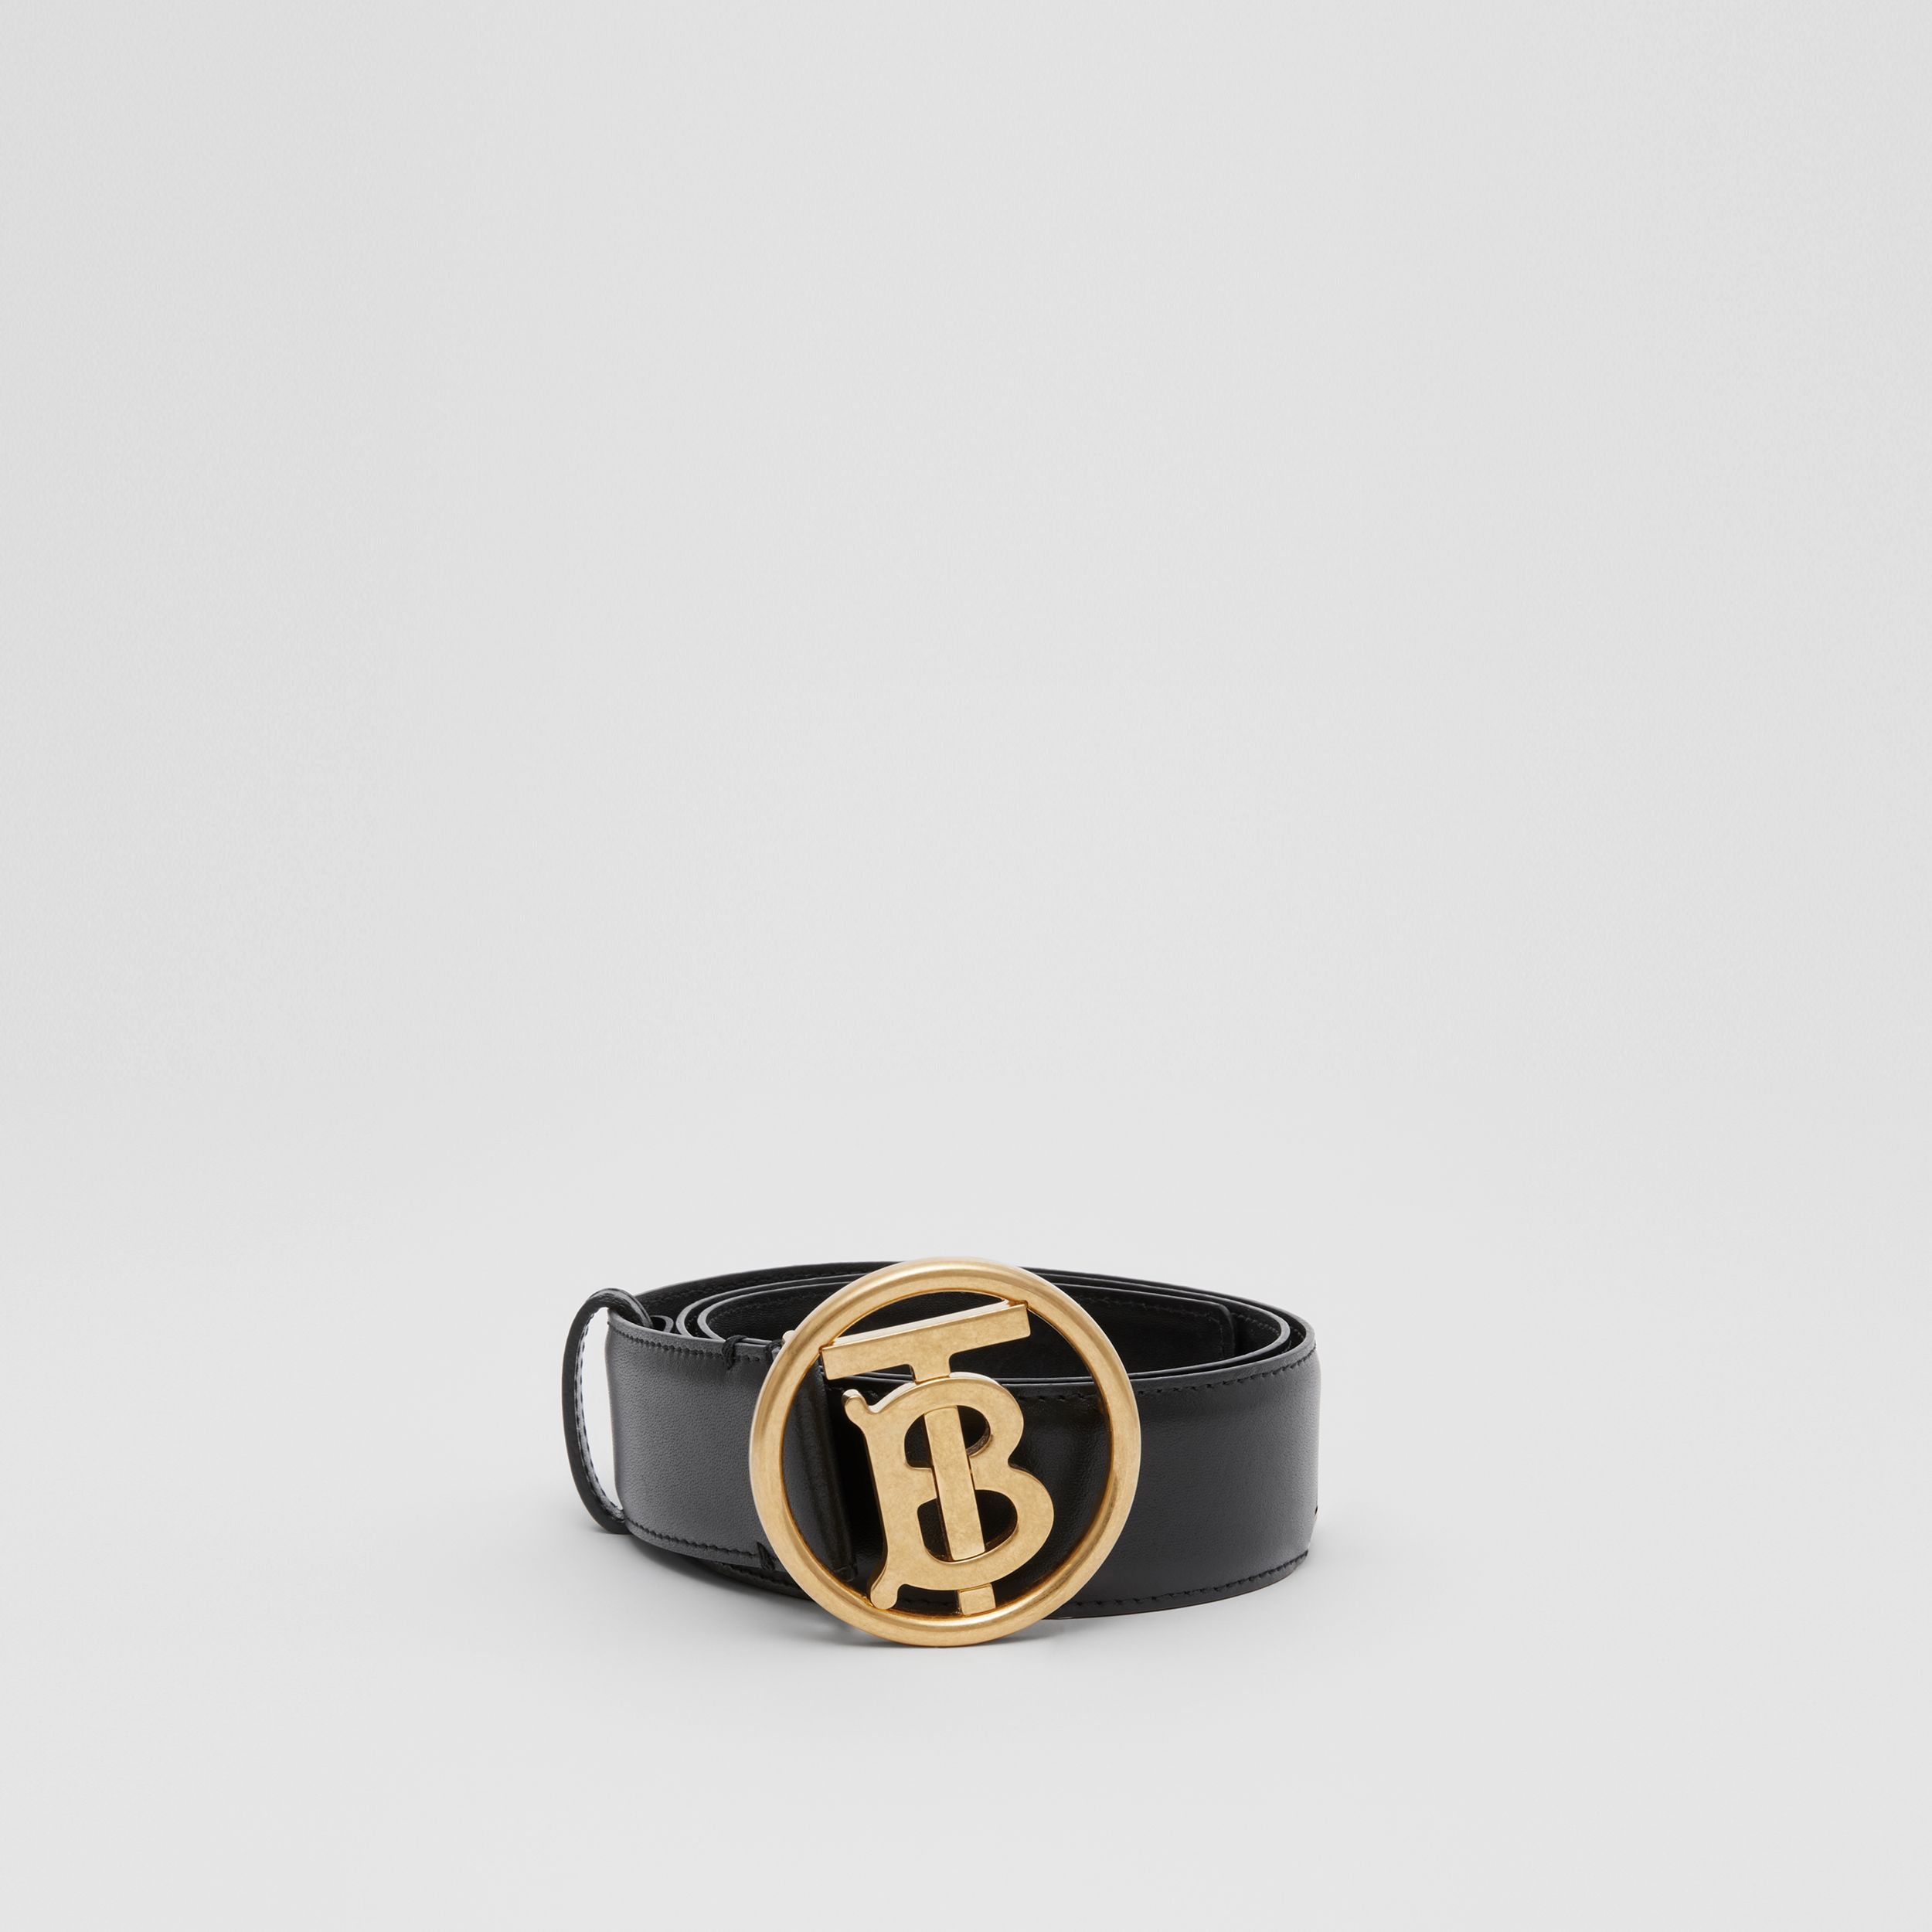 Monogram Motif Leather Belt in Black | Burberry - 4